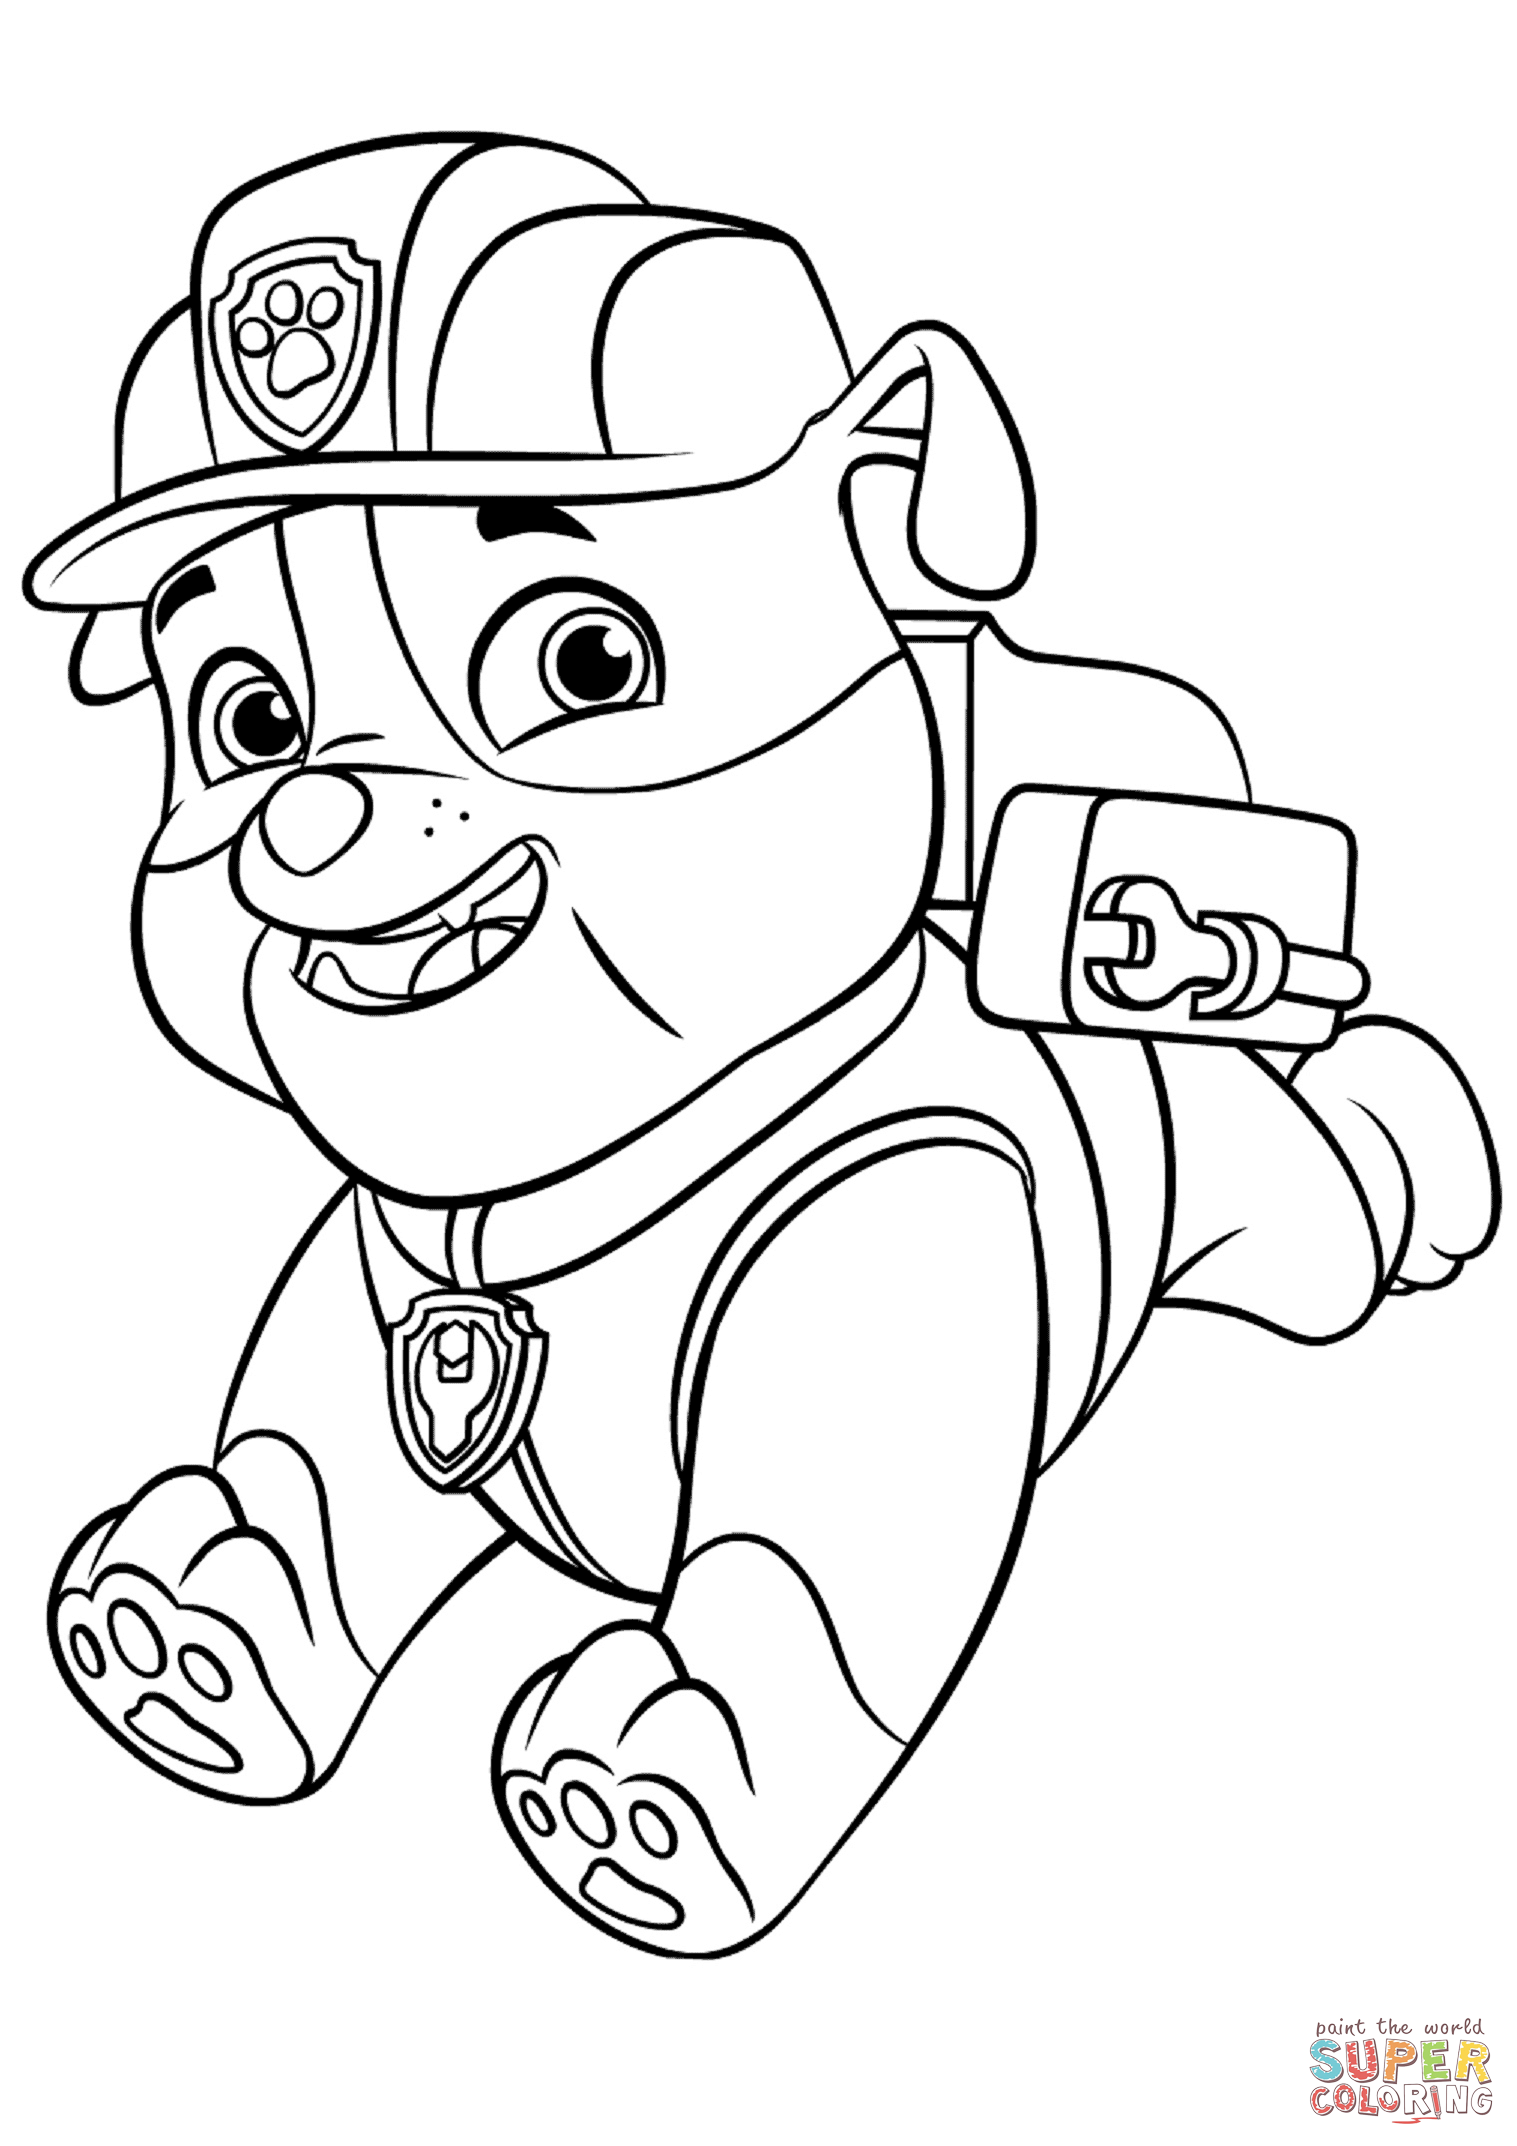 paw patrol coloring outline paw patrol rubble with backpack coloring page free coloring patrol paw outline